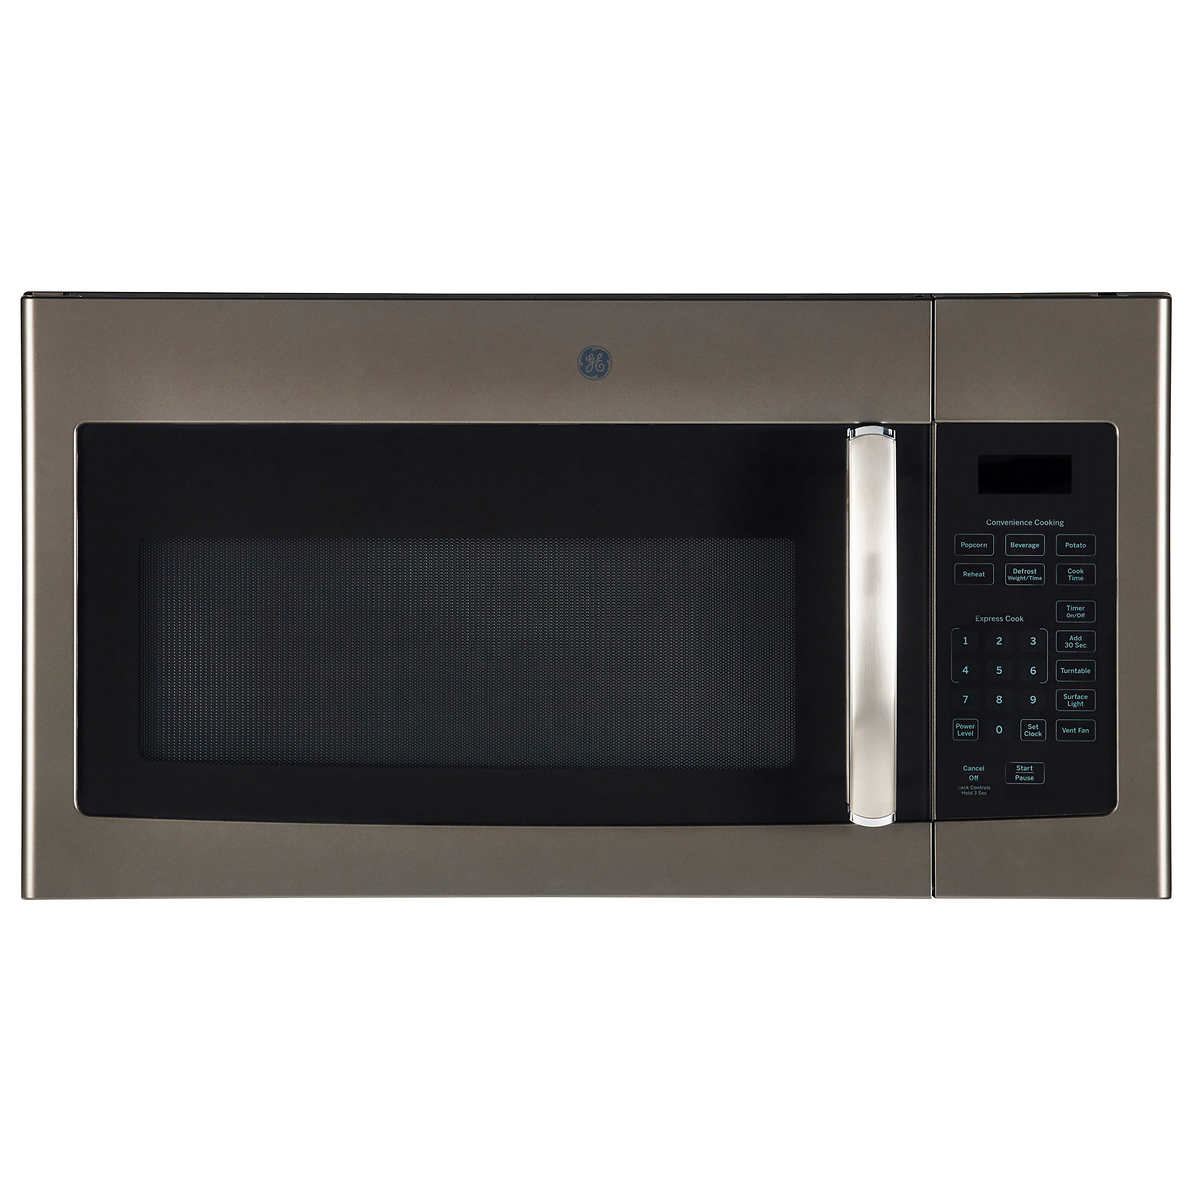 Ge Tech Support Ge Slate 16 Cuft 300 Cfm Over The Range Microwave With